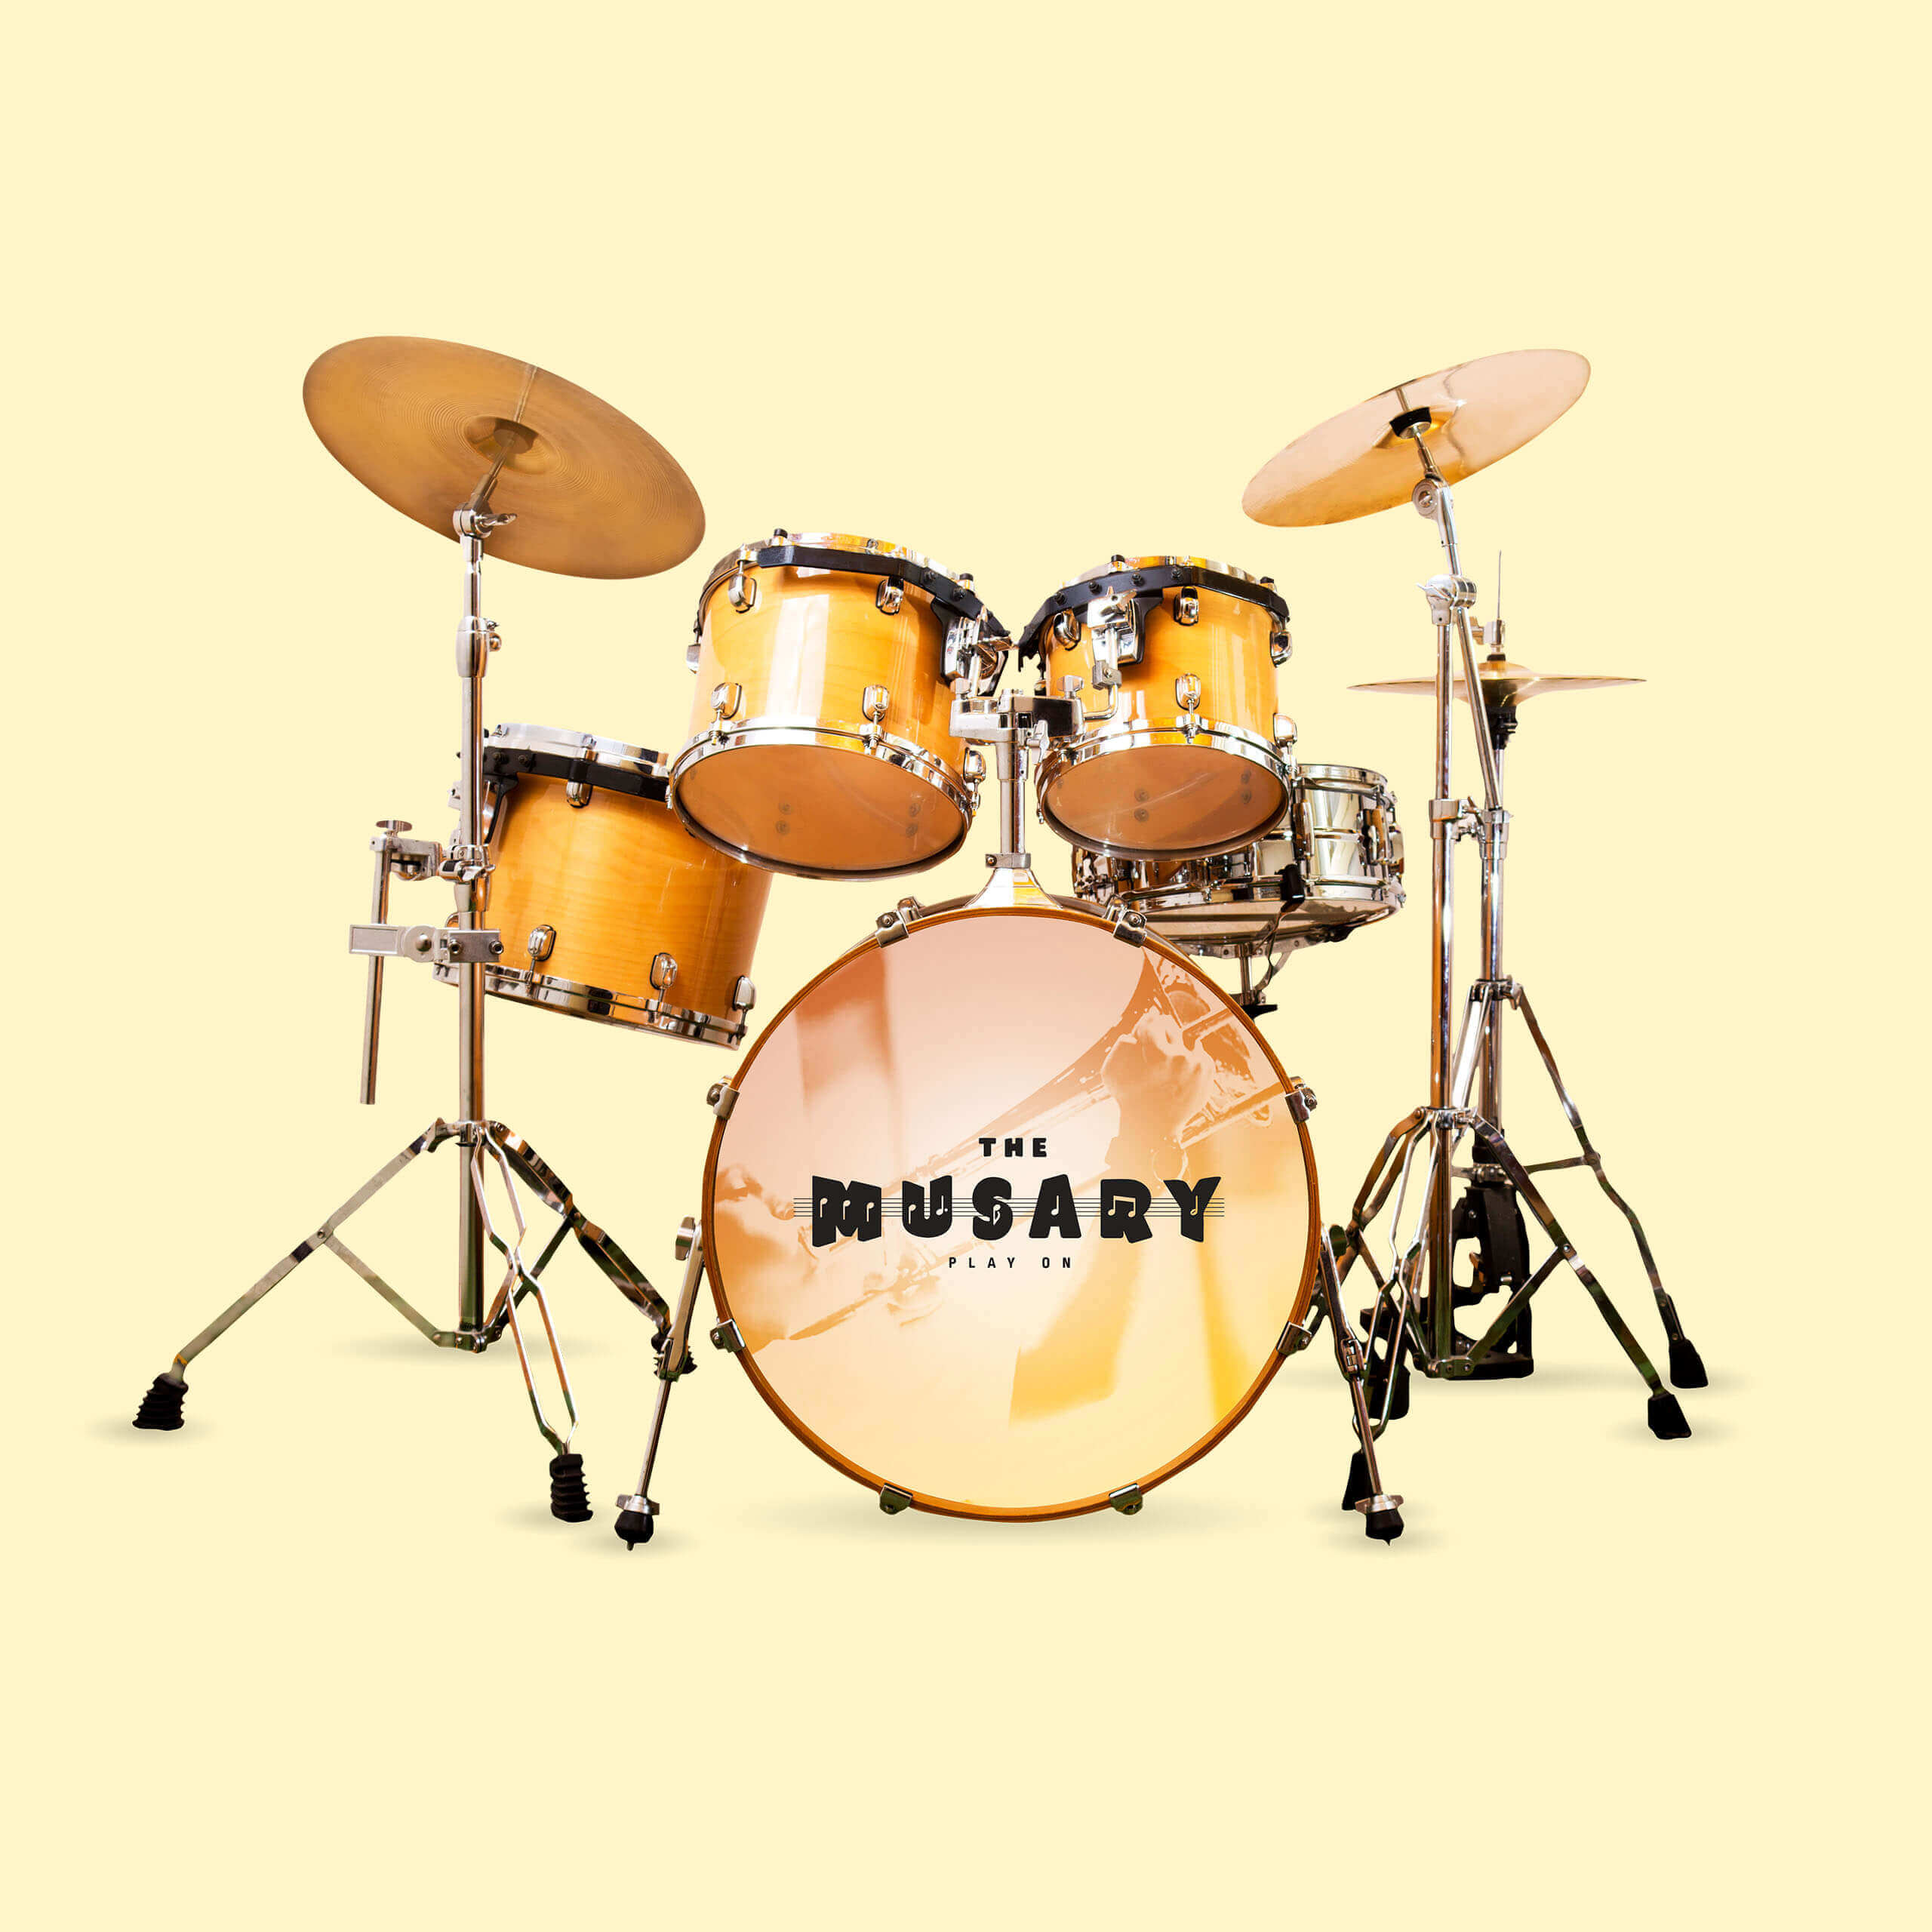 SEMPLICE_MUSARY_FUN-EXTRAS_112817_V3_0001_DRUM-SET